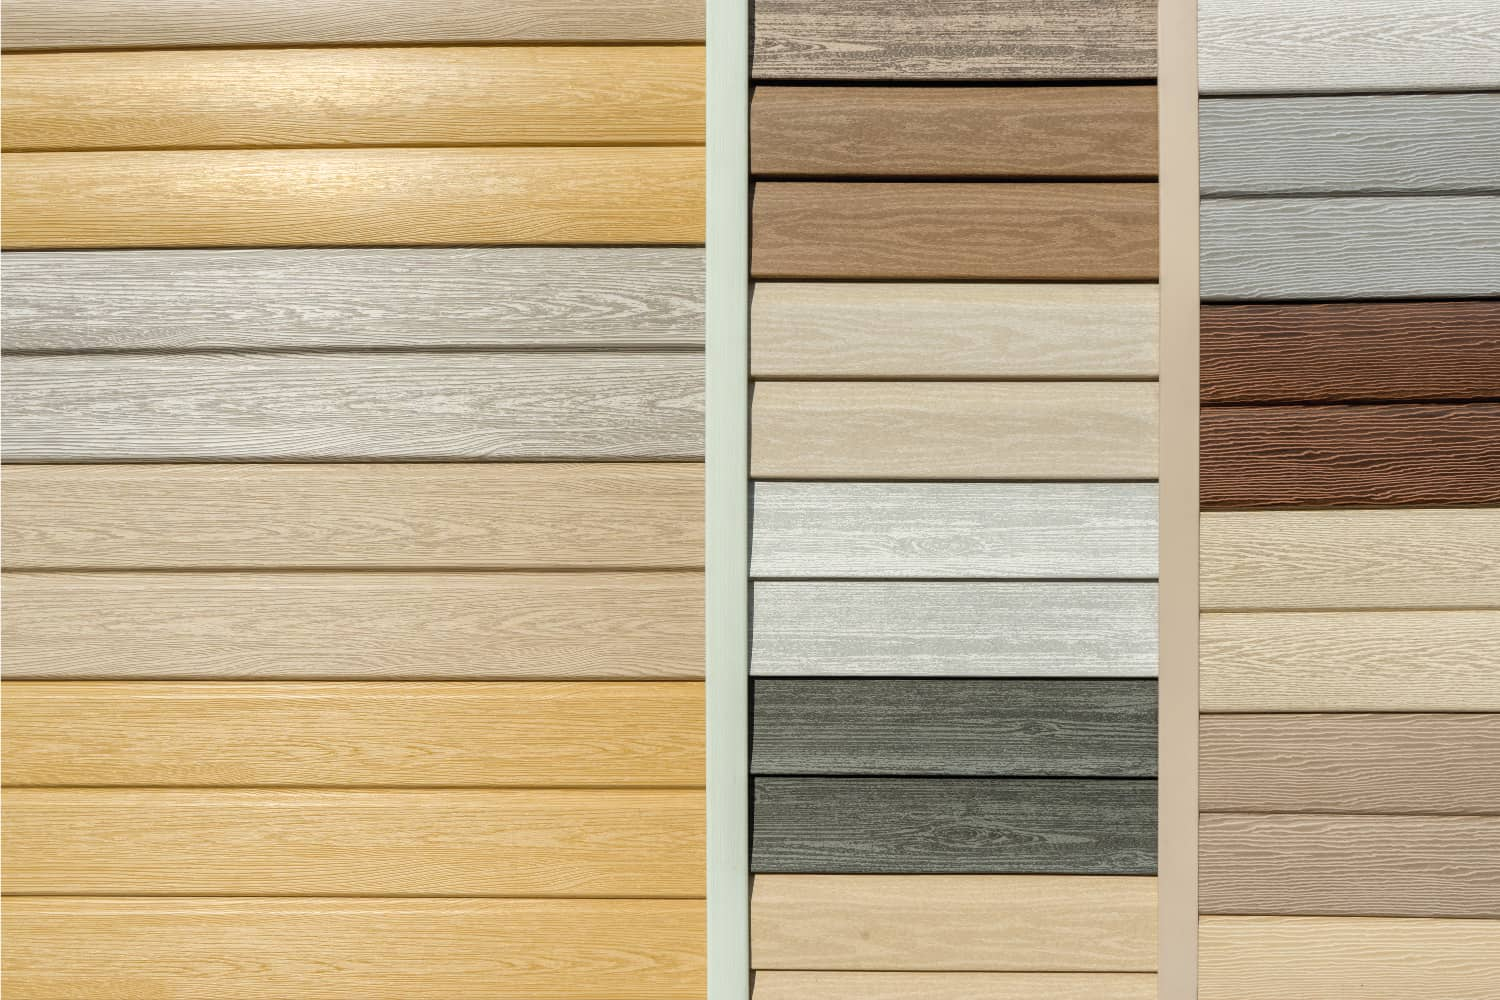 Vinyl siding with imitation wood texture in bright palette of colors. Plastic wall covering for exterior decoration of house